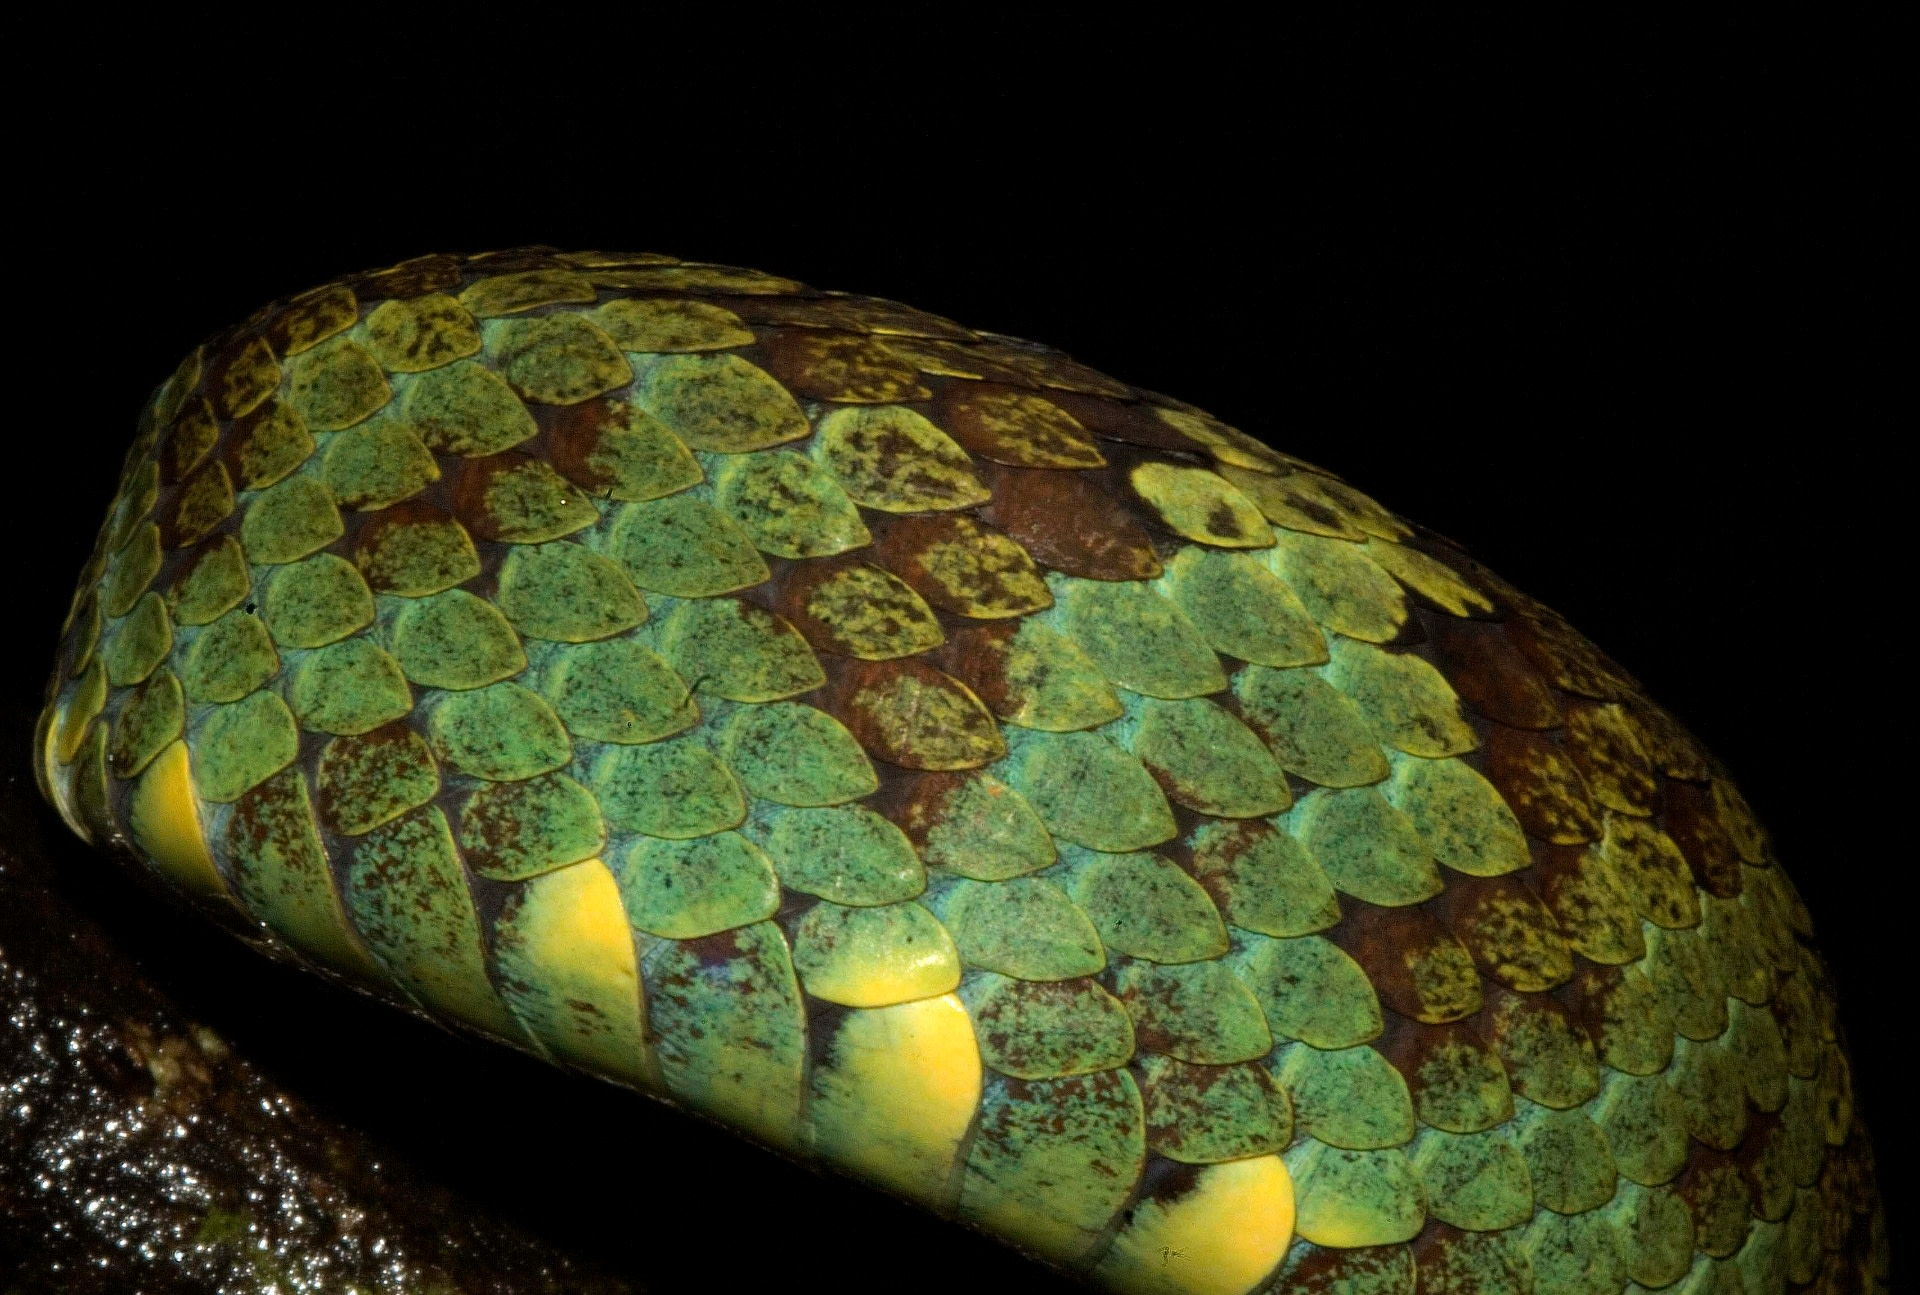 The next step in identification is to count the number of scales on the snake's body. Every species has a certain arrangement of scales, so noting the number of scales along the dorsal and ventral side, is a good way to ID species. Photo: Nirmal Kulkarni